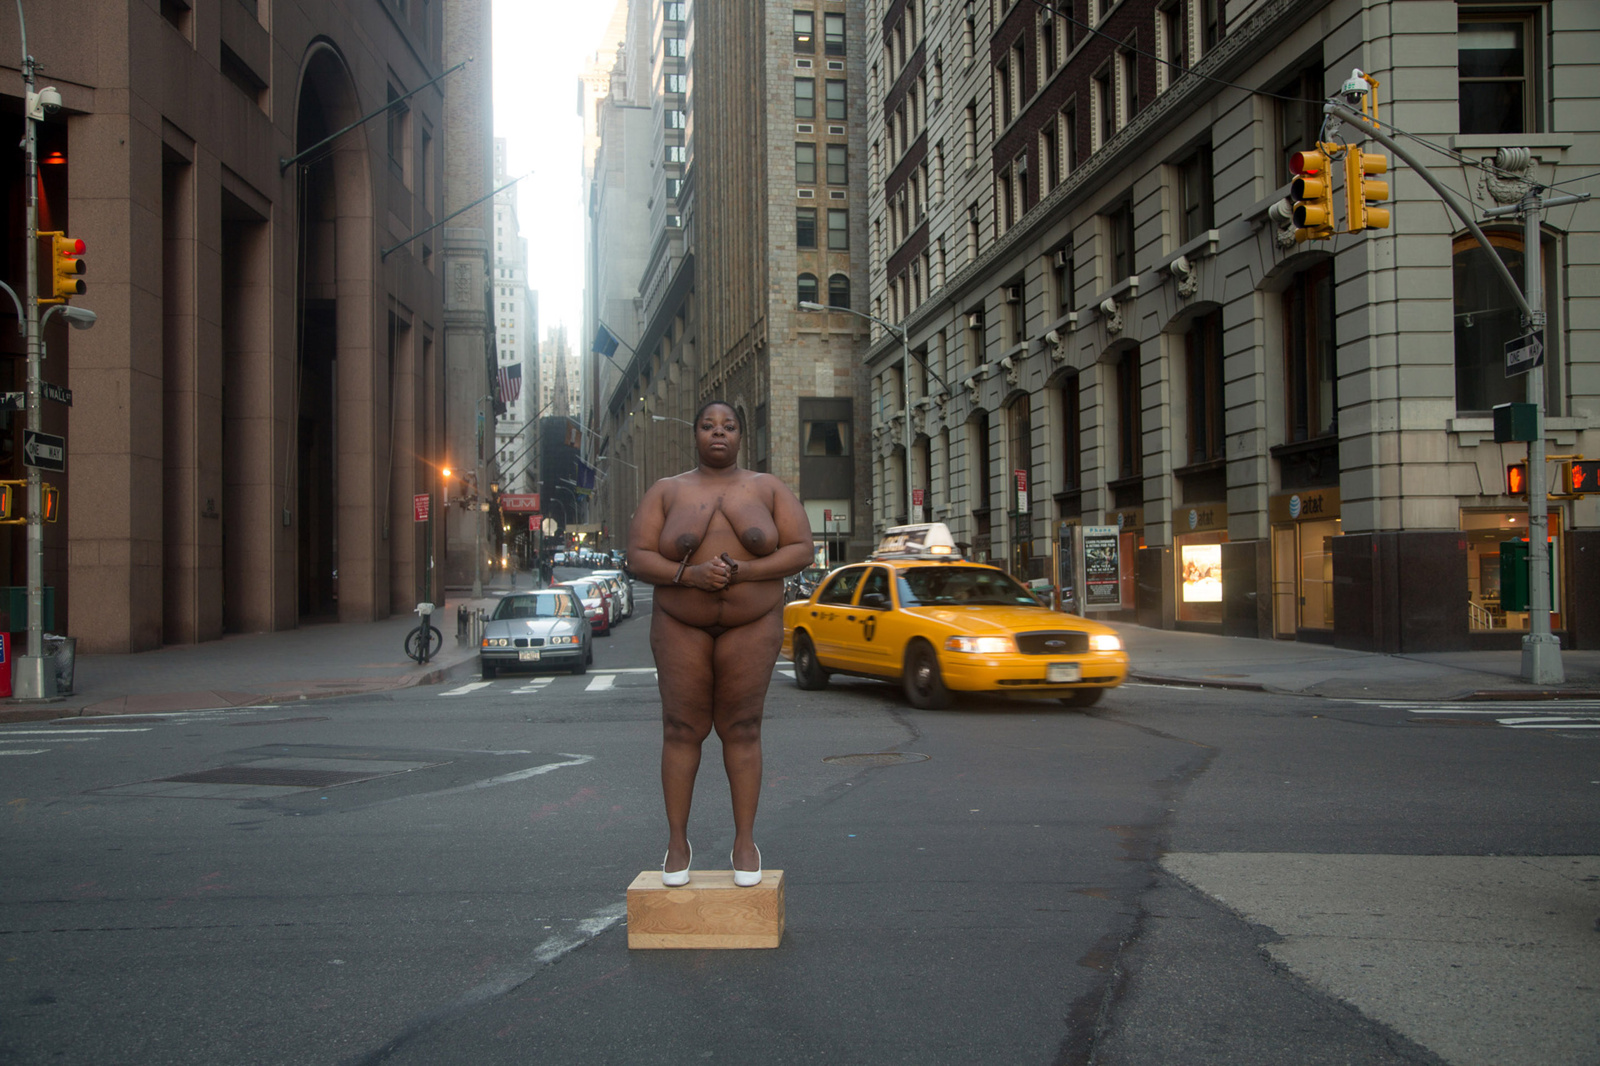 """From her body sprang their greatest wealth."" Site of Colonial Slave Market - Wall Street. Nona Faustine"